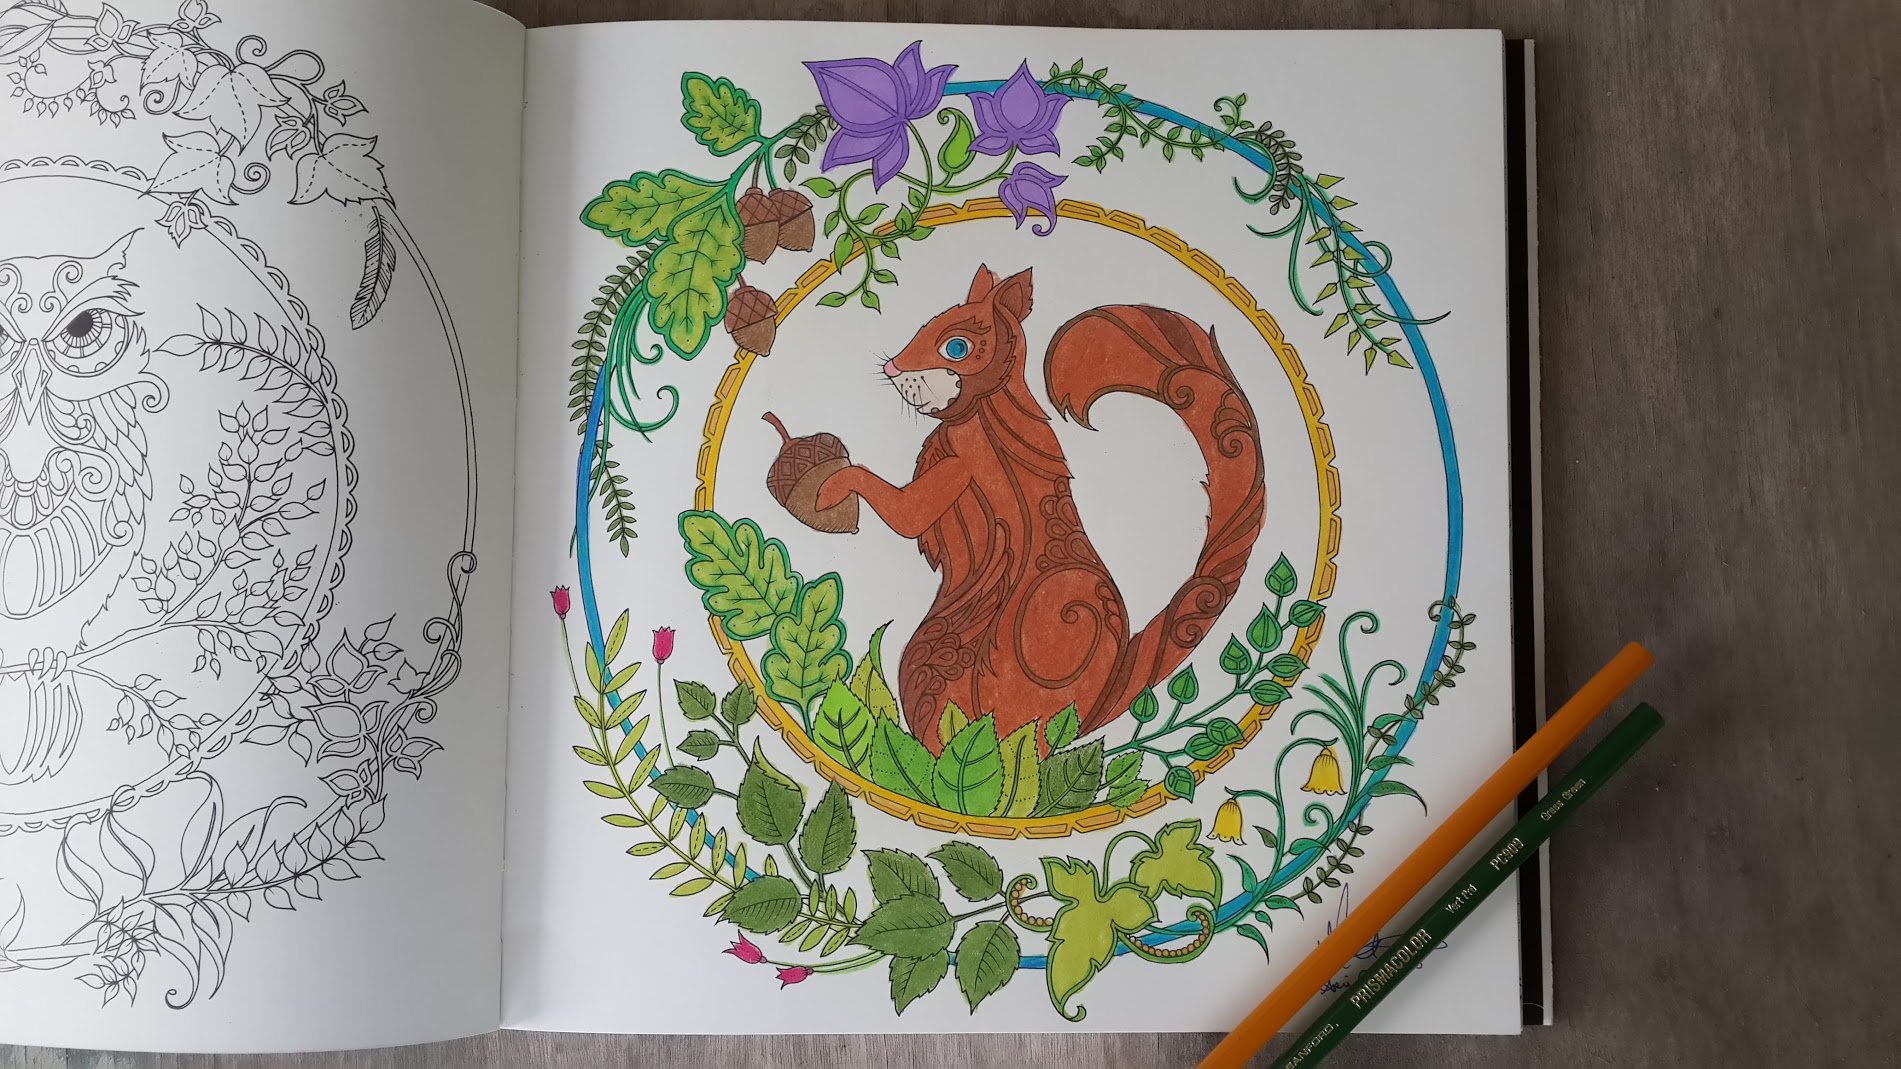 Enchanted forest coloring book website - Squirrel Colored Page From The Enchanted Forest Coloring Book